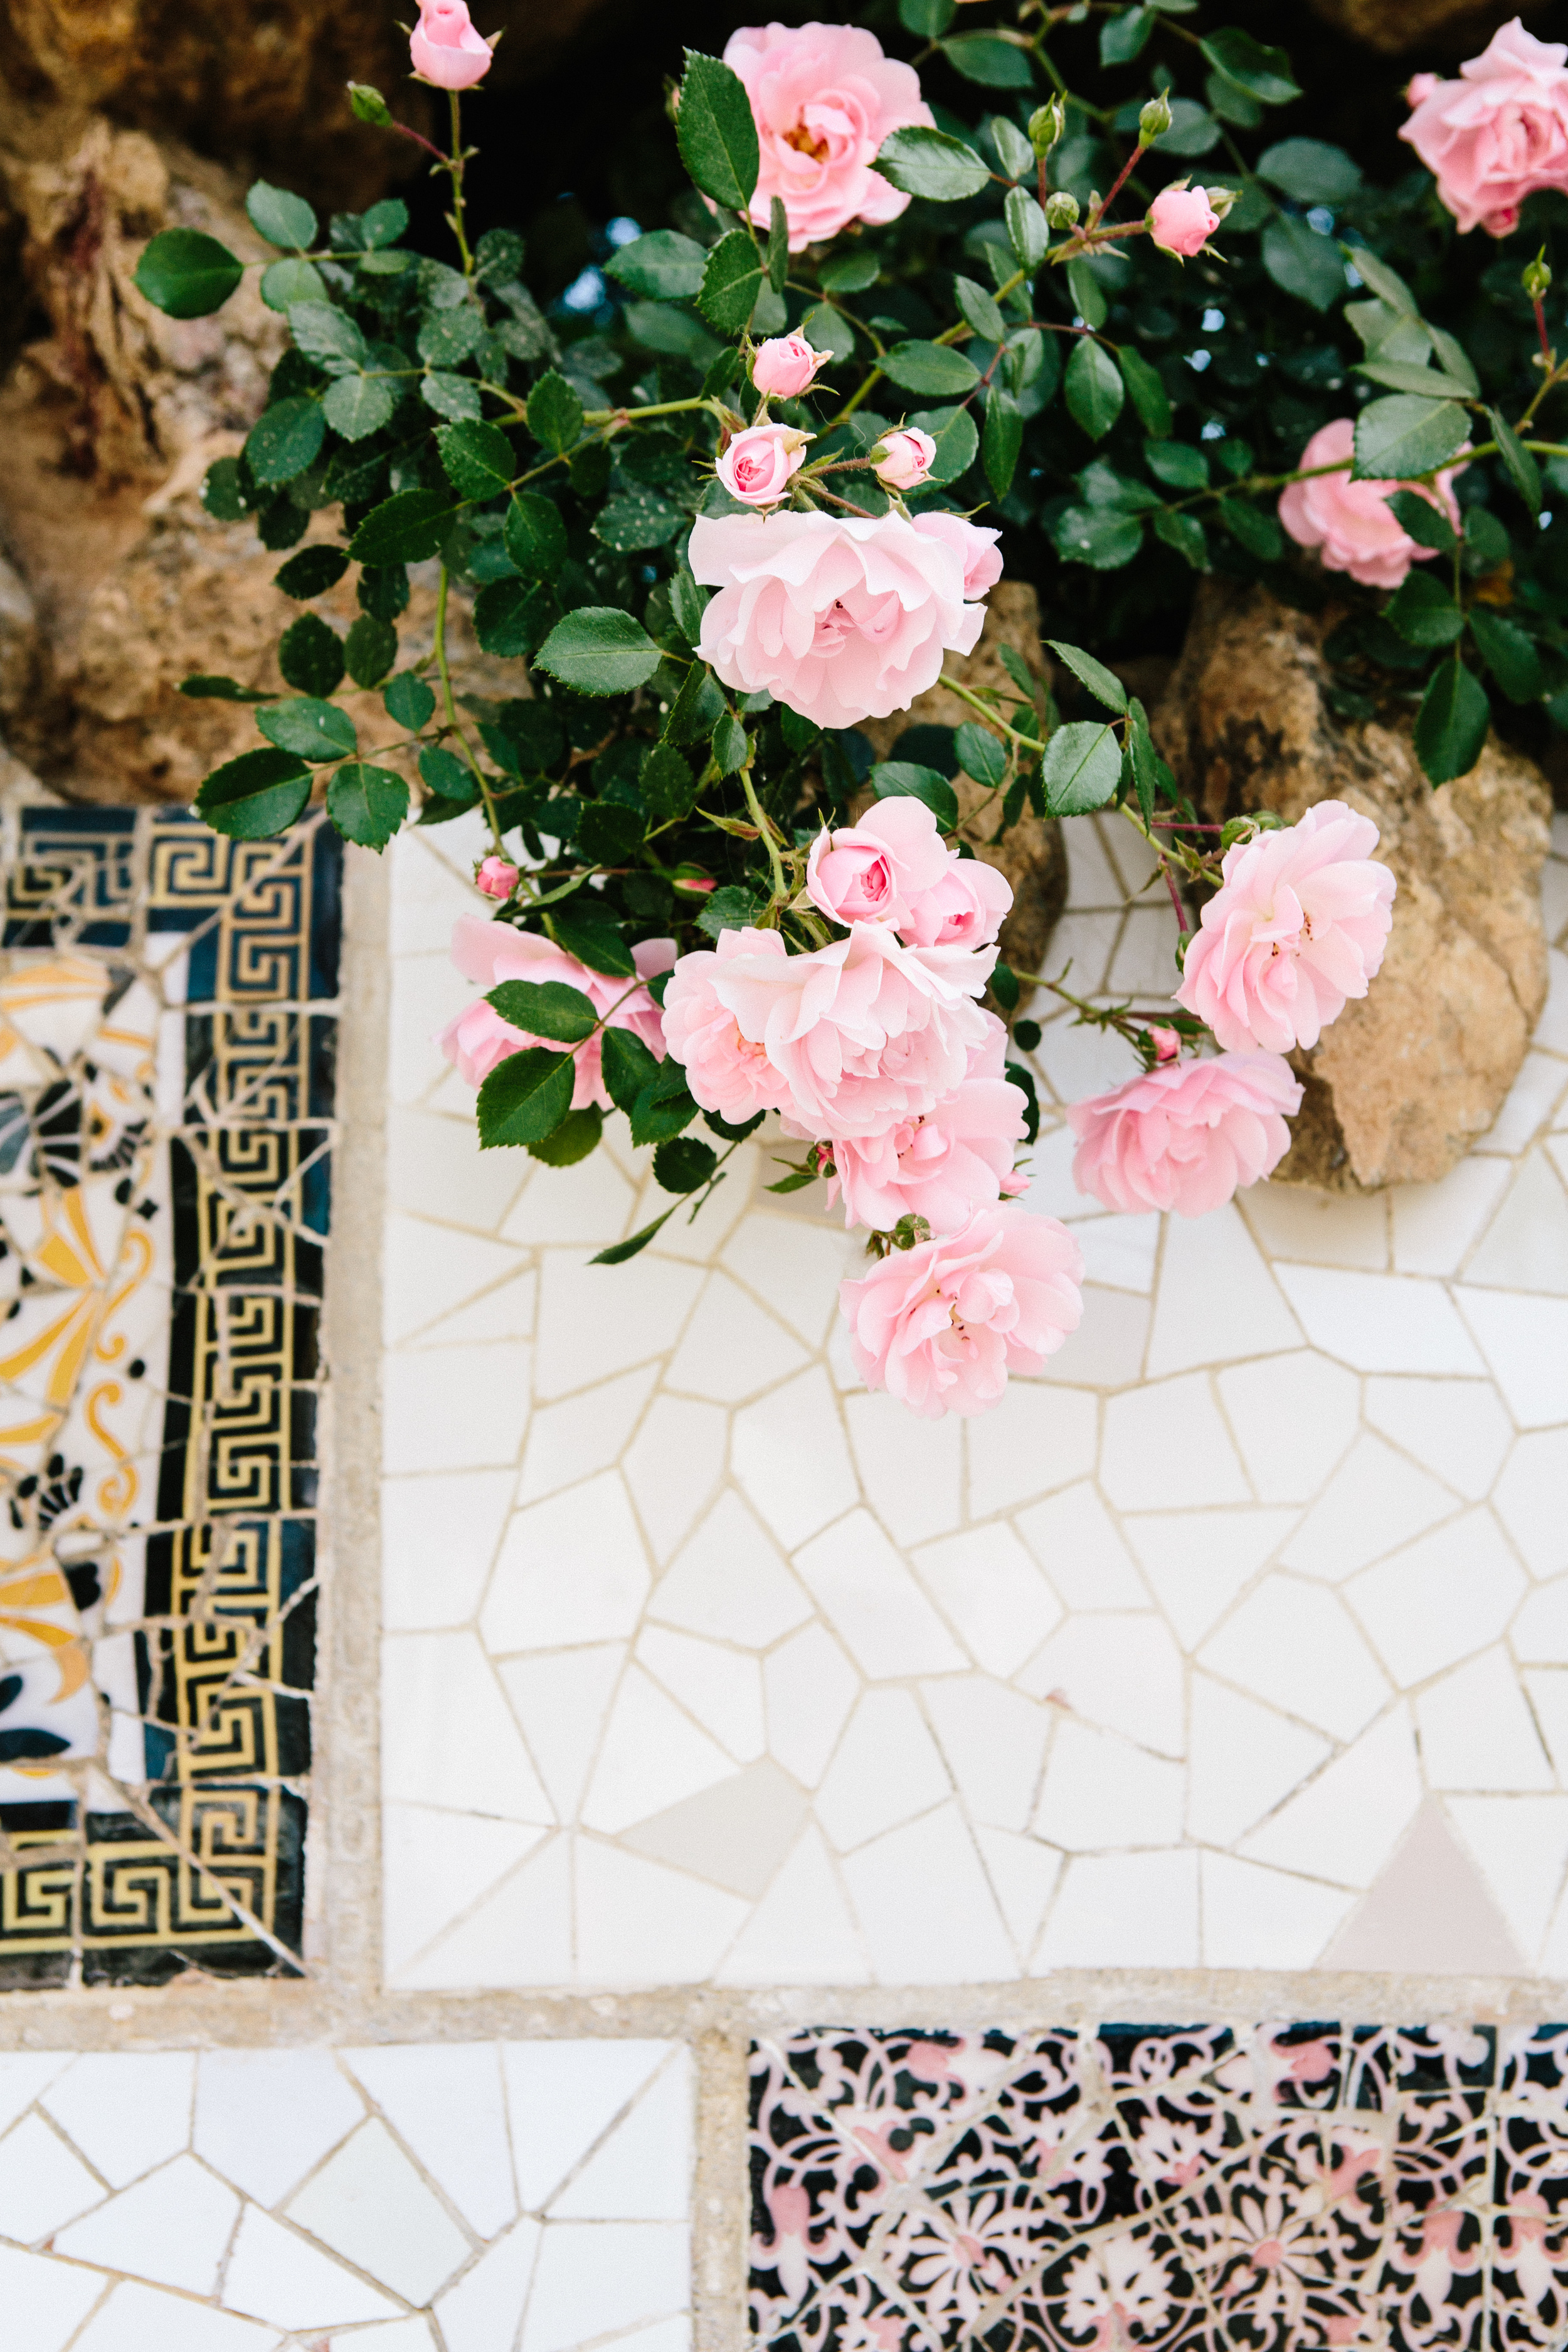 parc guell pink roses-1.jpg